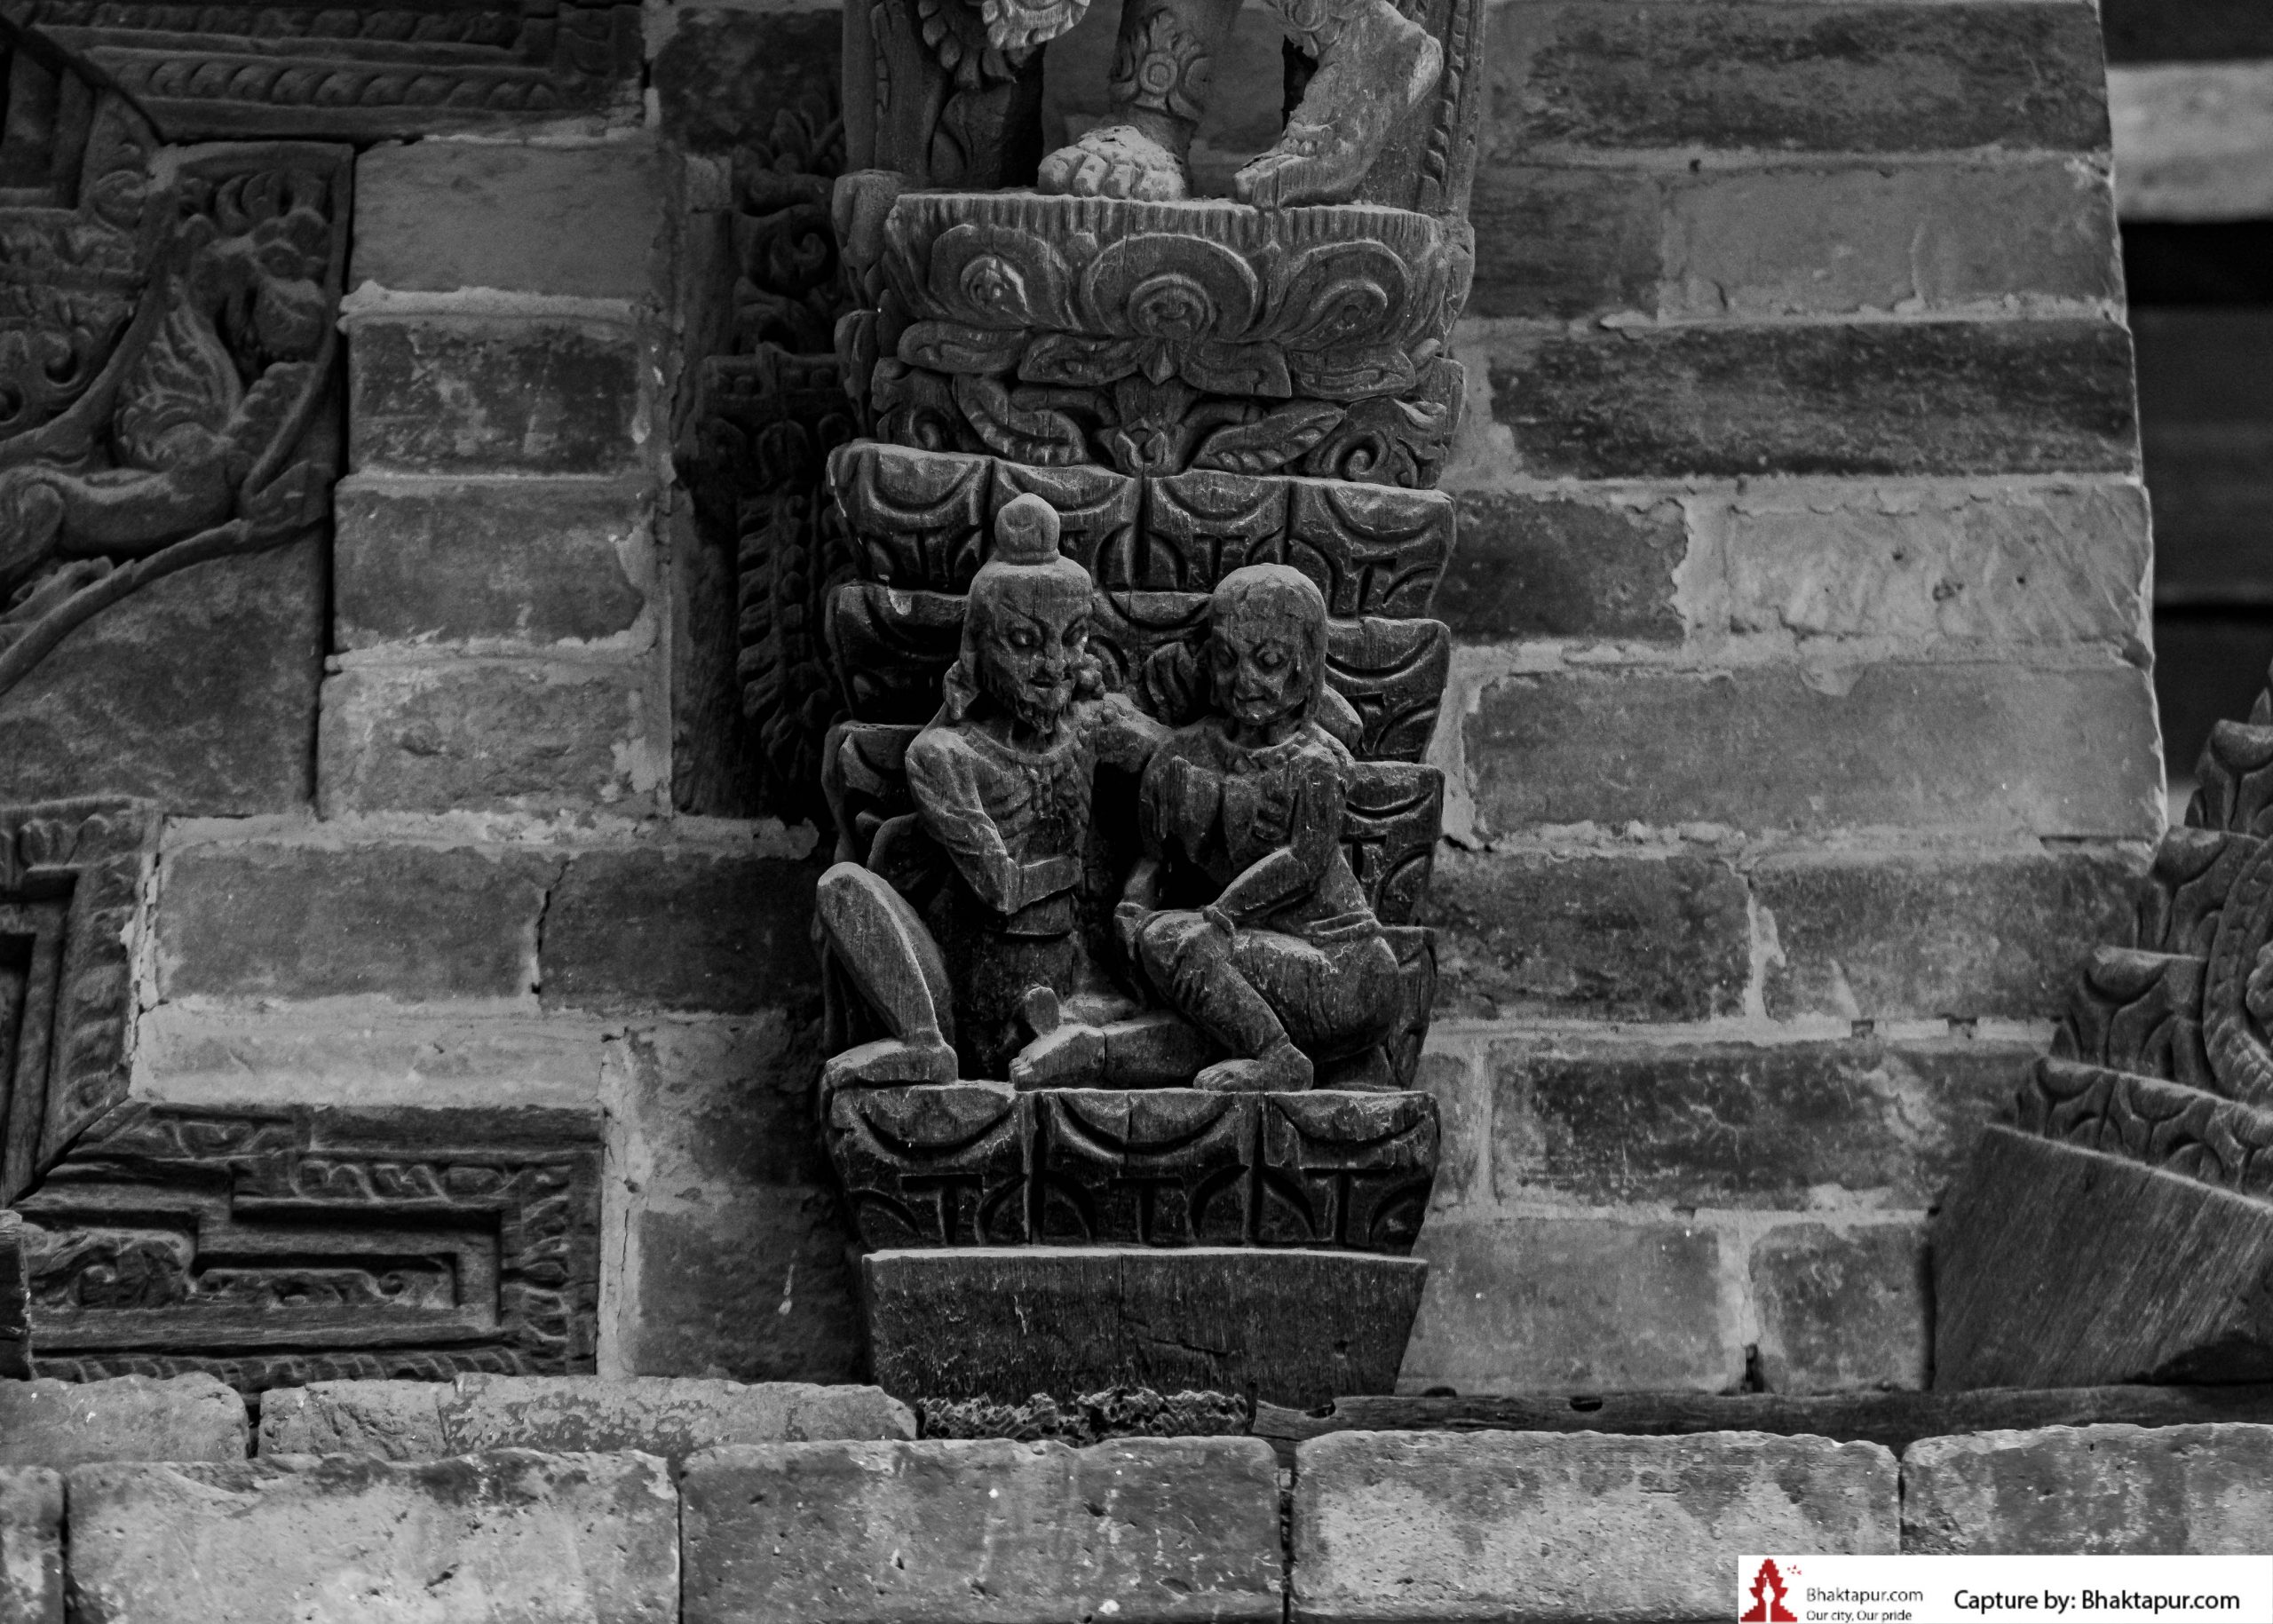 https://www.bhaktapur.com/wp-content/uploads/2021/08/erotic-carving-113-of-137-scaled.jpg